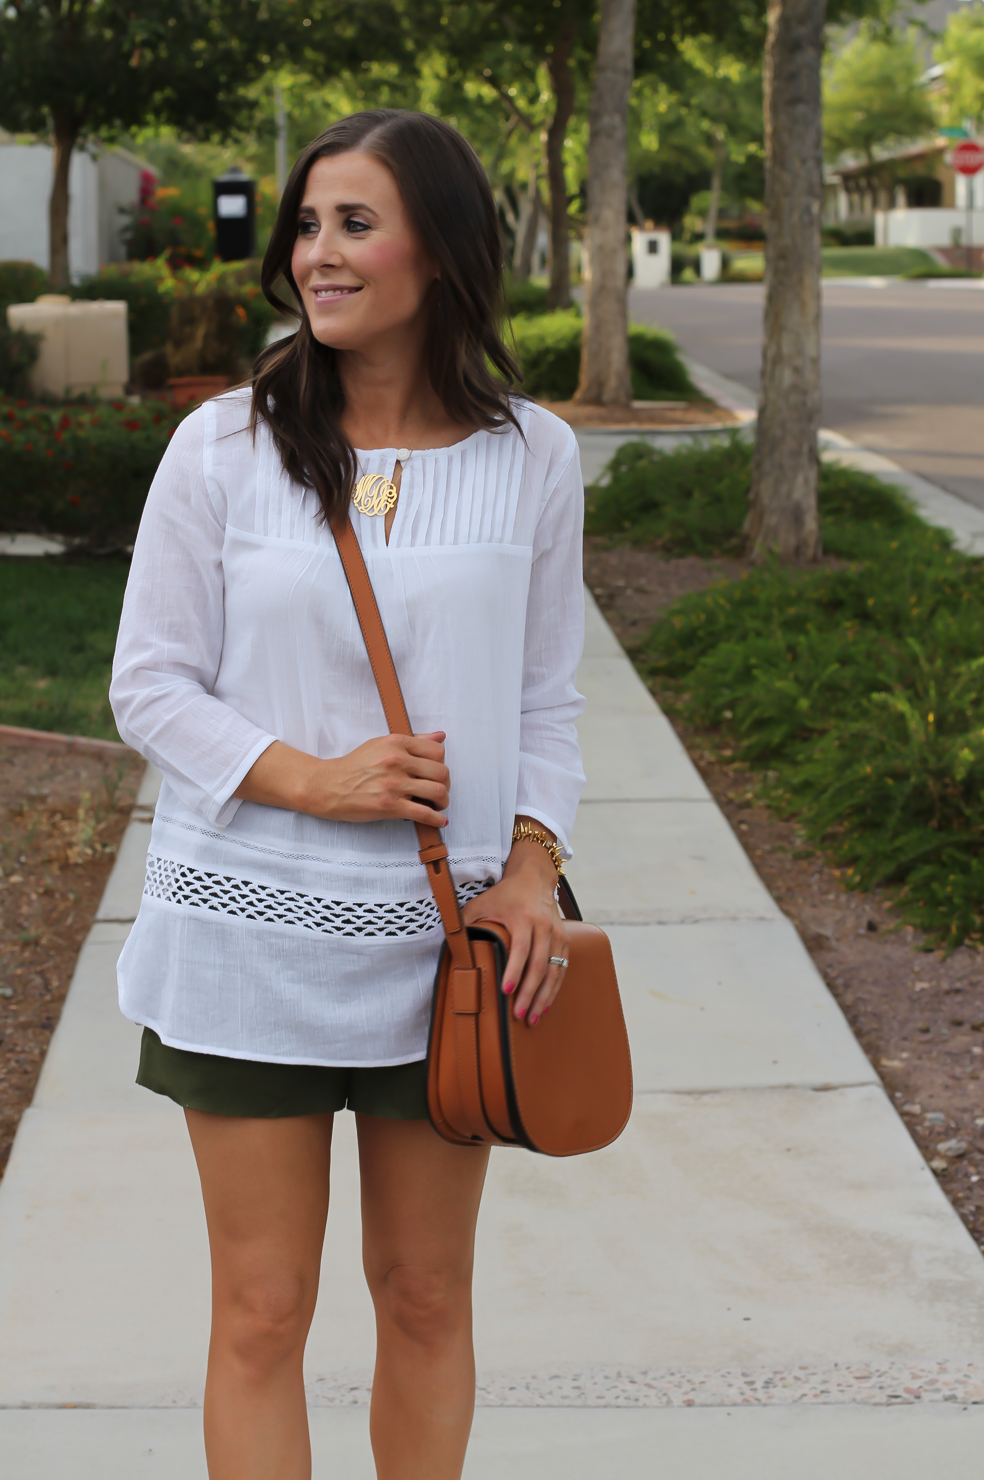 Gauze White Lace Tunic, Green Linen Shorts, Brown Suede Espadrilles, Brown Leather Crossbody Bag, Old Navy, J.Crew, Chloe, Tory Burch 15